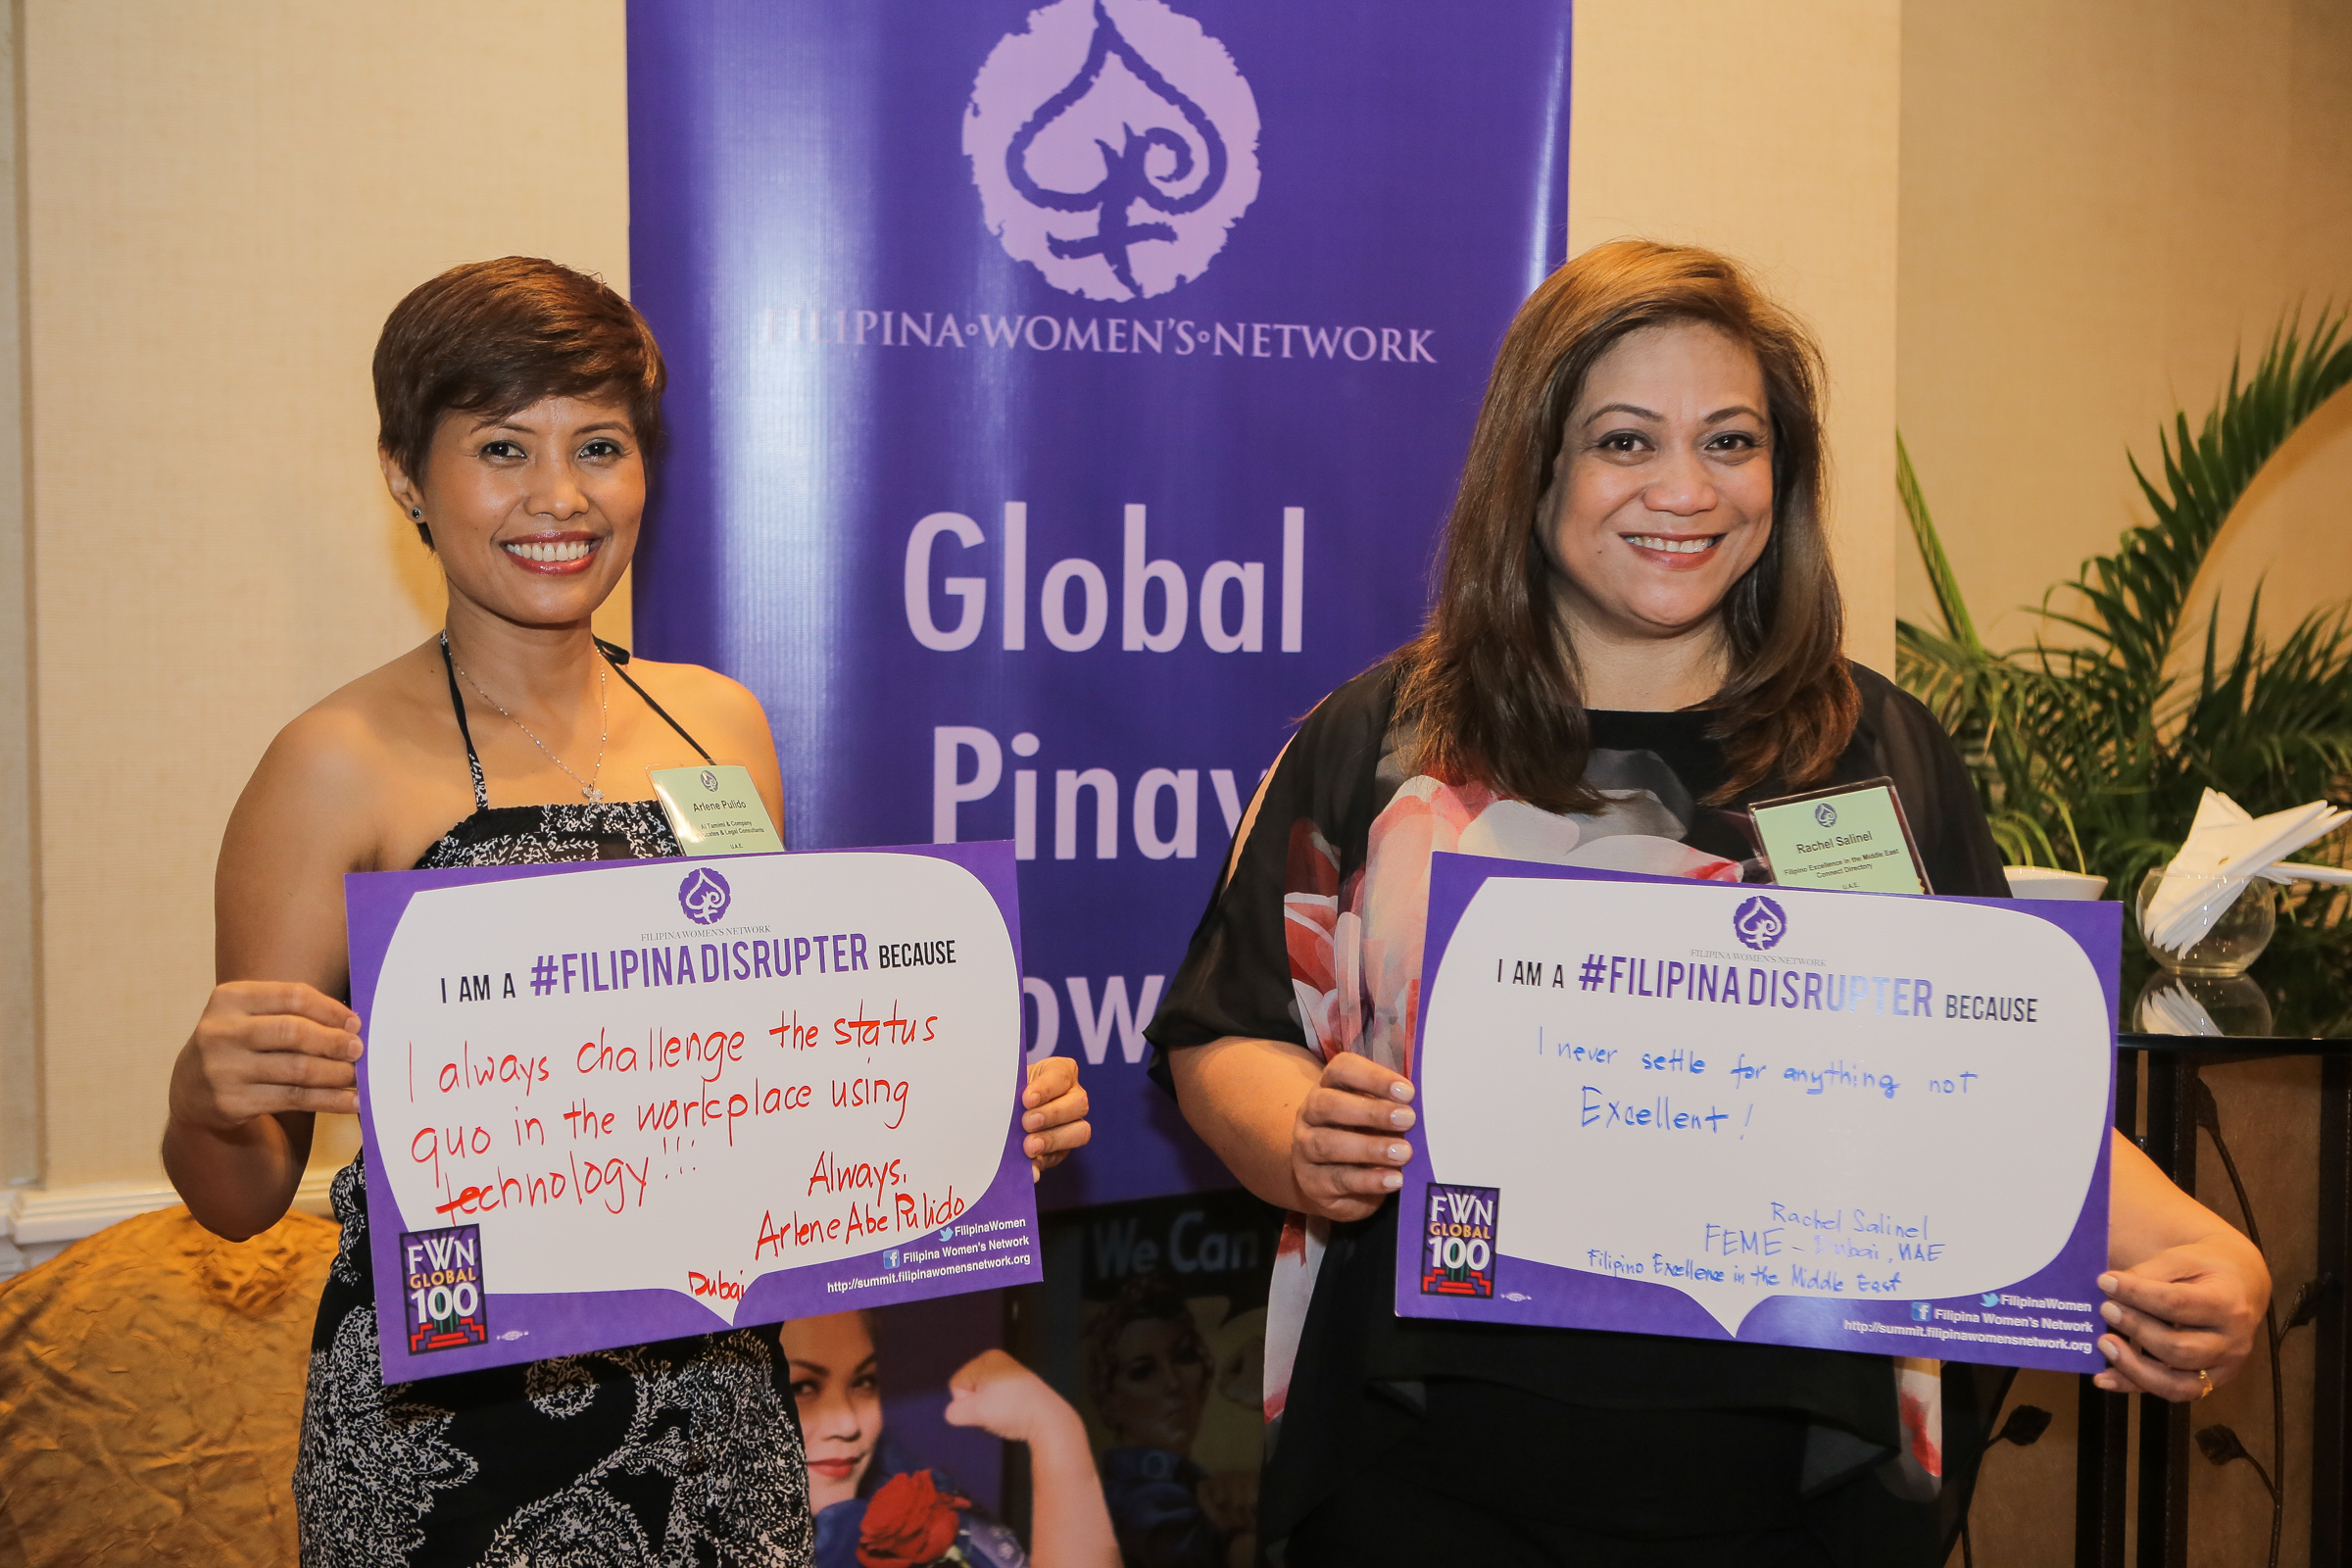 United Arab Emirates Global FWN100™ '16 Awardees Arlene Abe Pulido and Rachel Salinel share their #FilipinaDISRUPTER messages at the #FWNSummit2016 in Cebu.